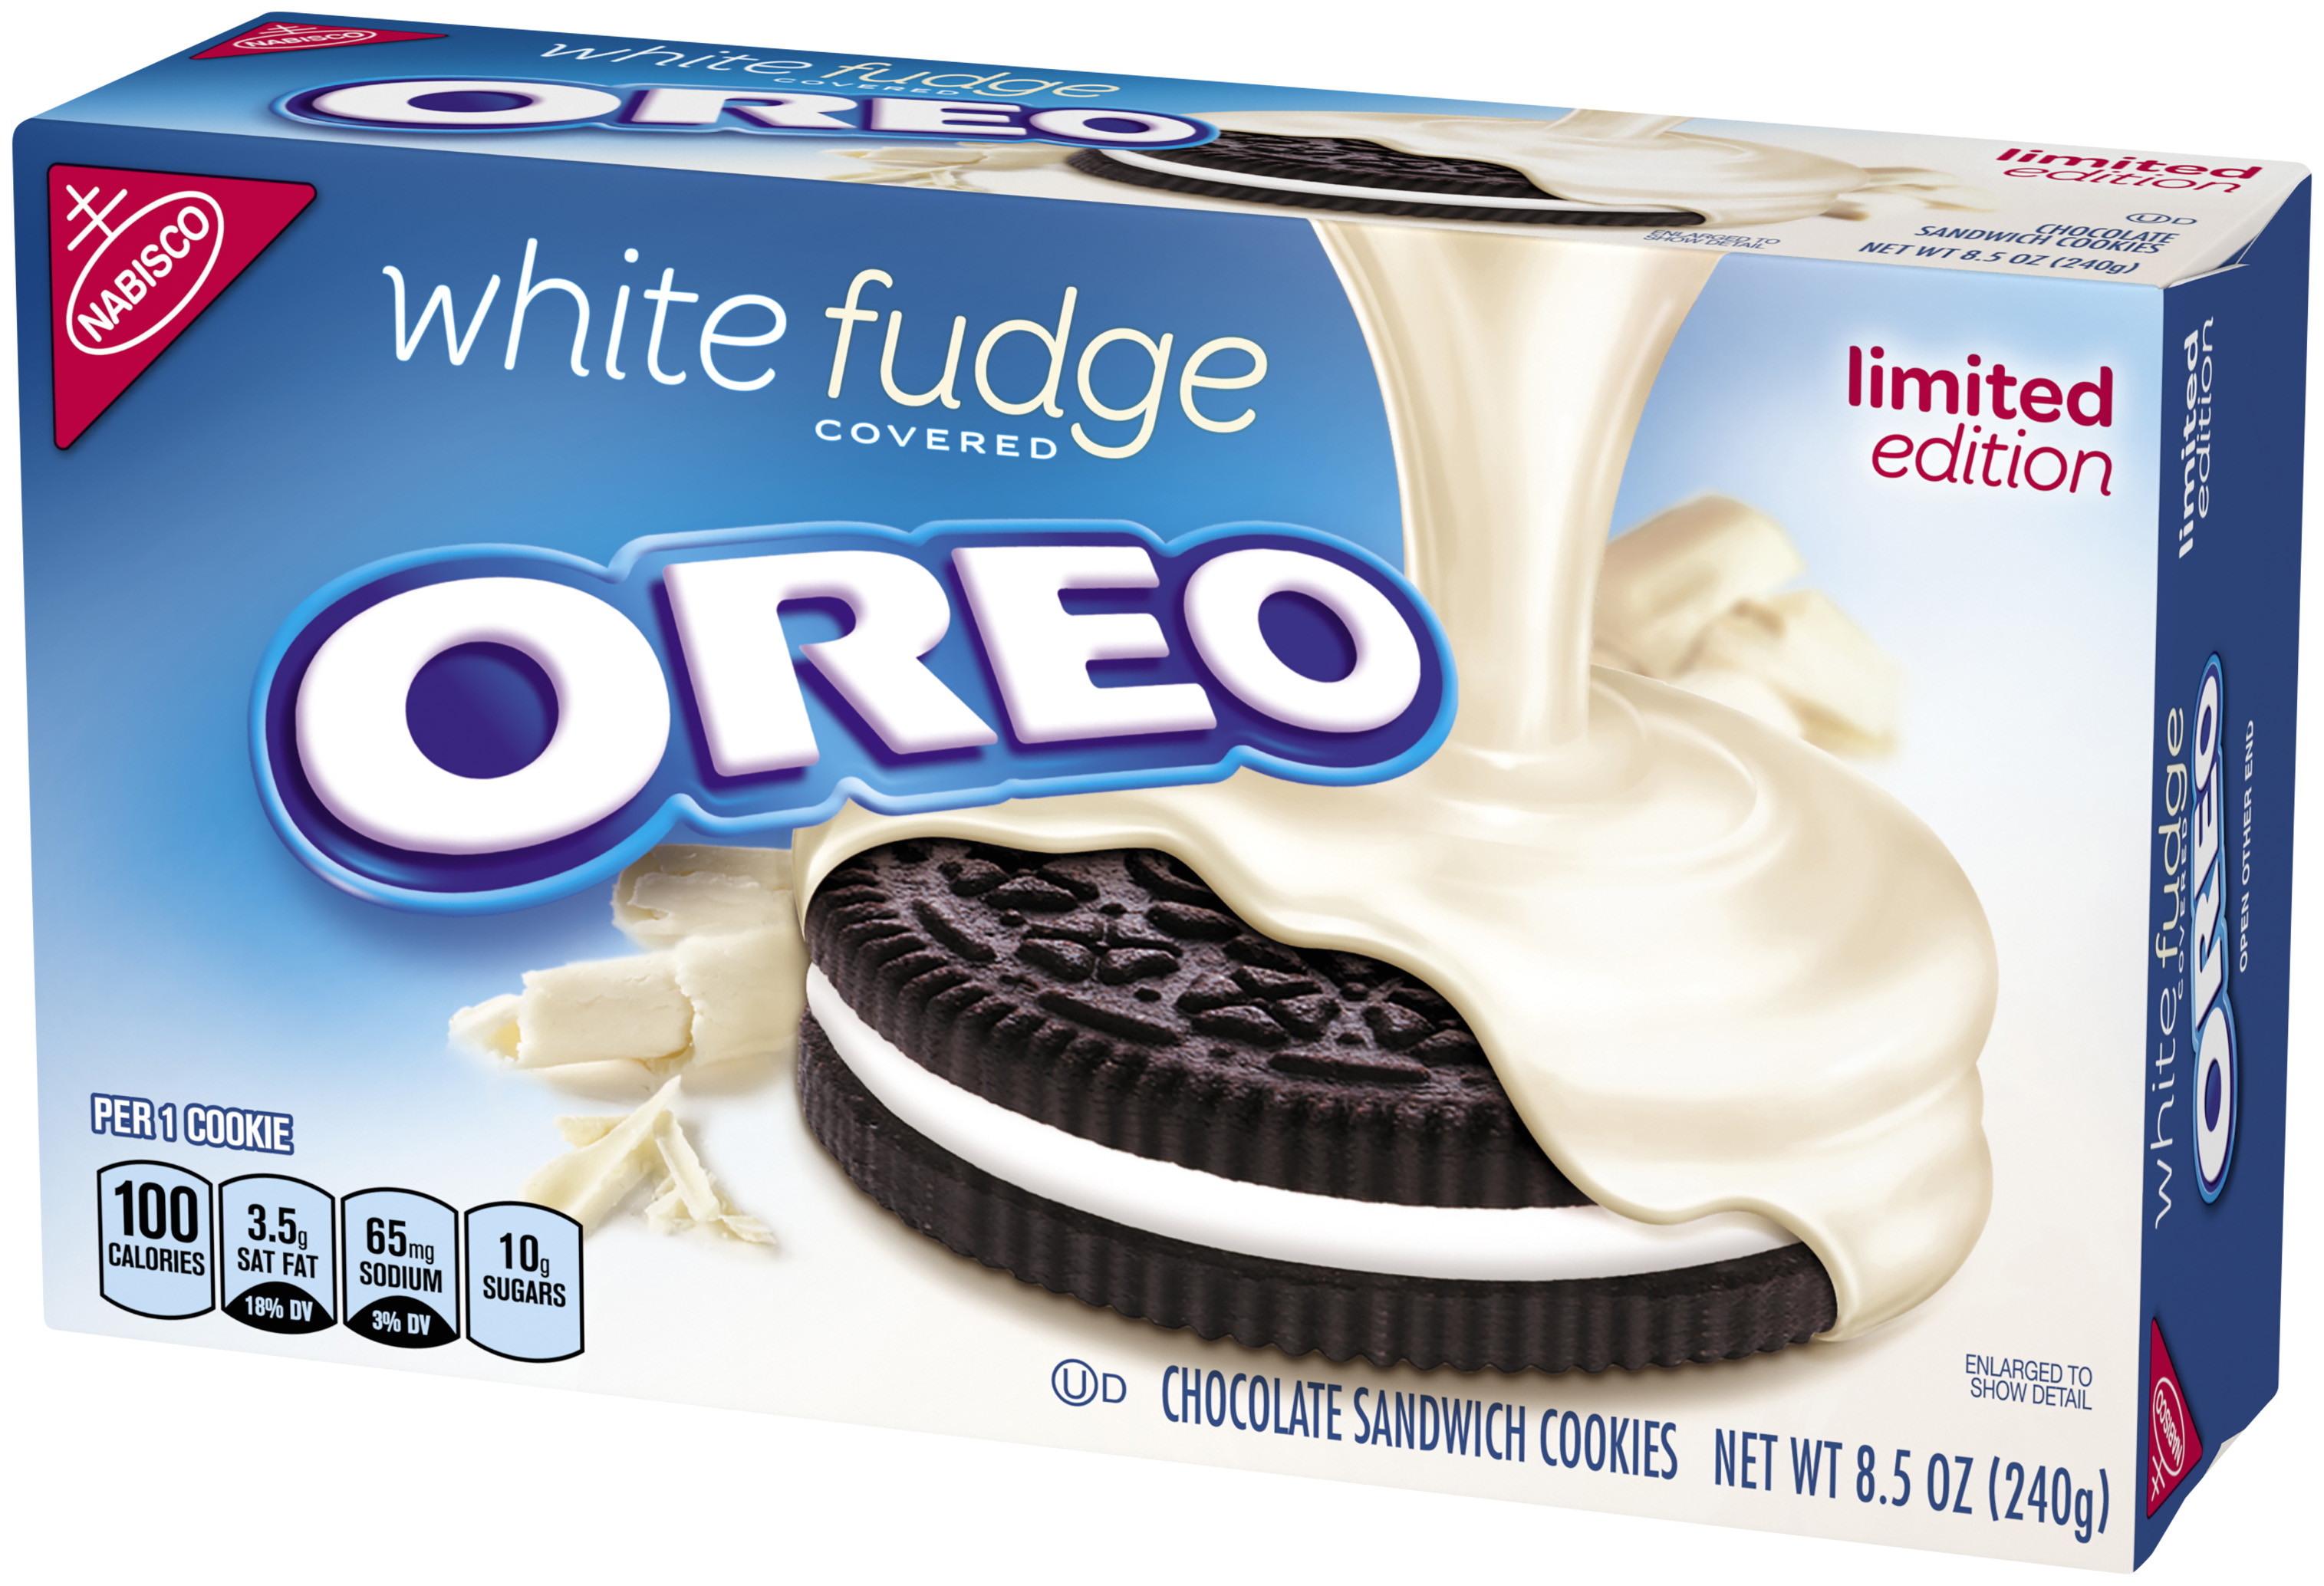 oreo white fudge covered chocolate sandwich cookies 8 5 oz walmart com